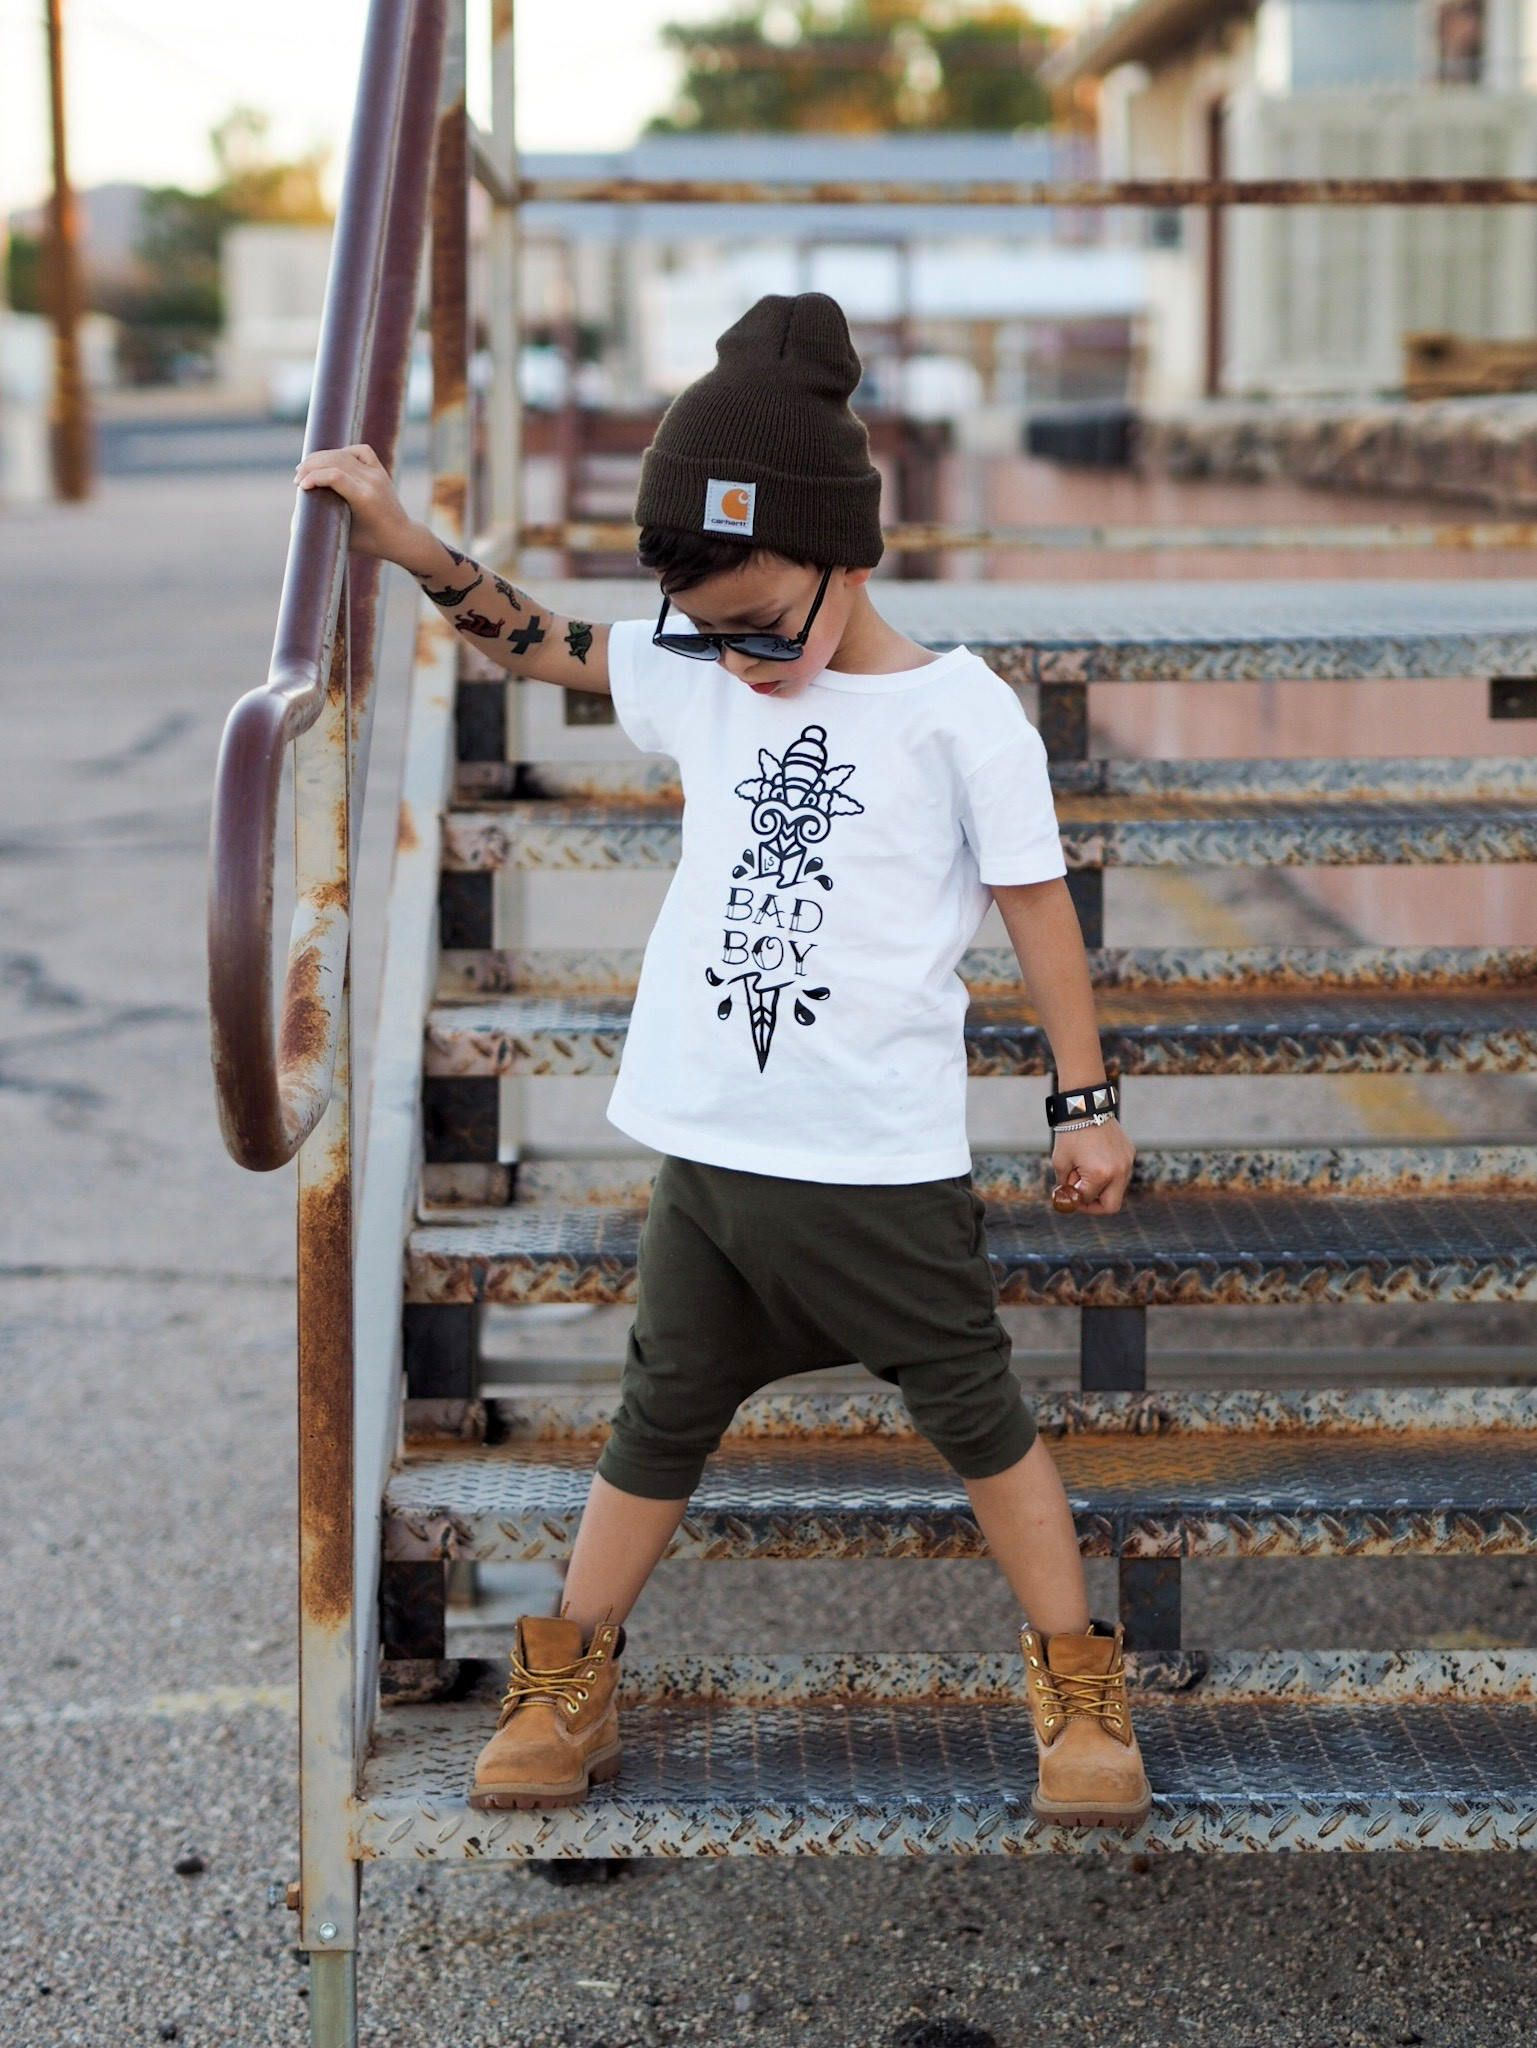 Bad Boy Kids Tee Edgy Toddler Clothes, Trendy Kids